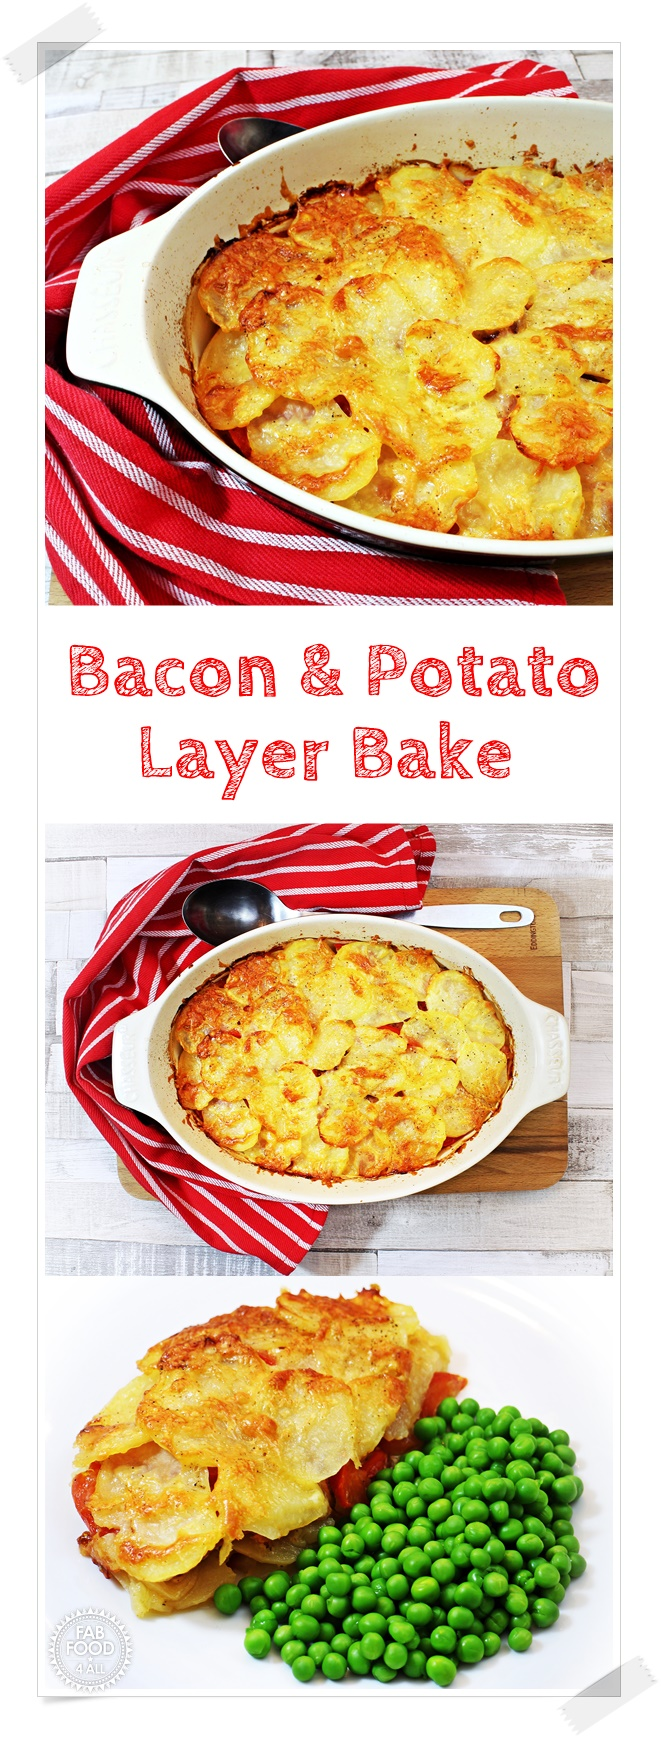 Bacon & Potato Layer Bake - Fab Food 4 All